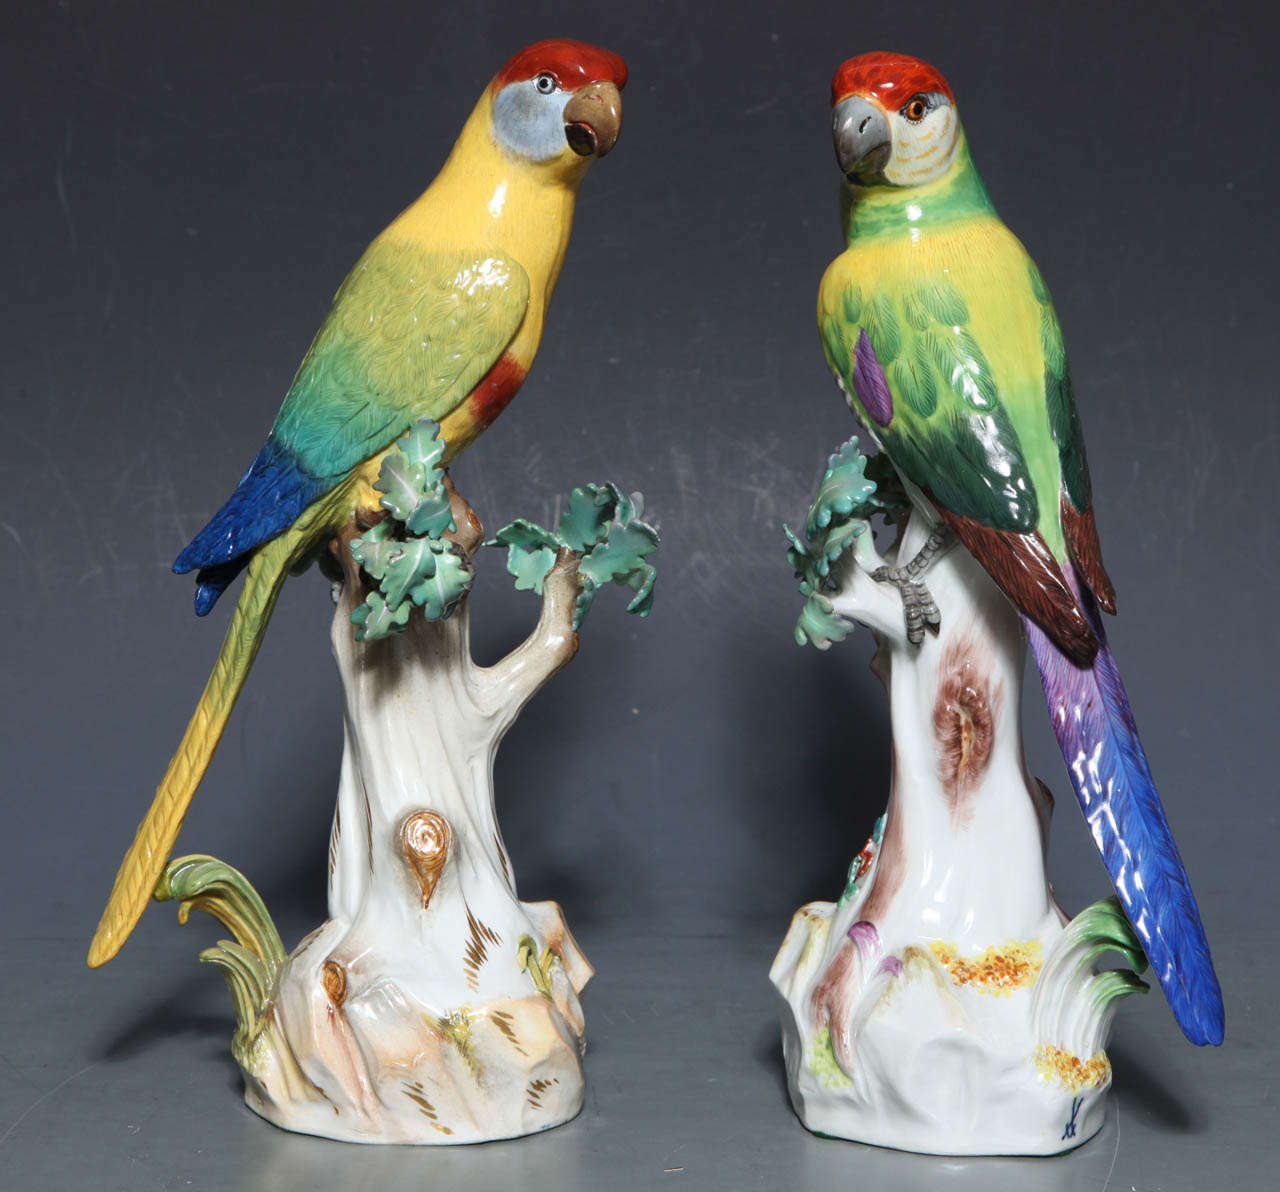 Pair of Meissen Porcelain Figures of Parrots For Sale 2